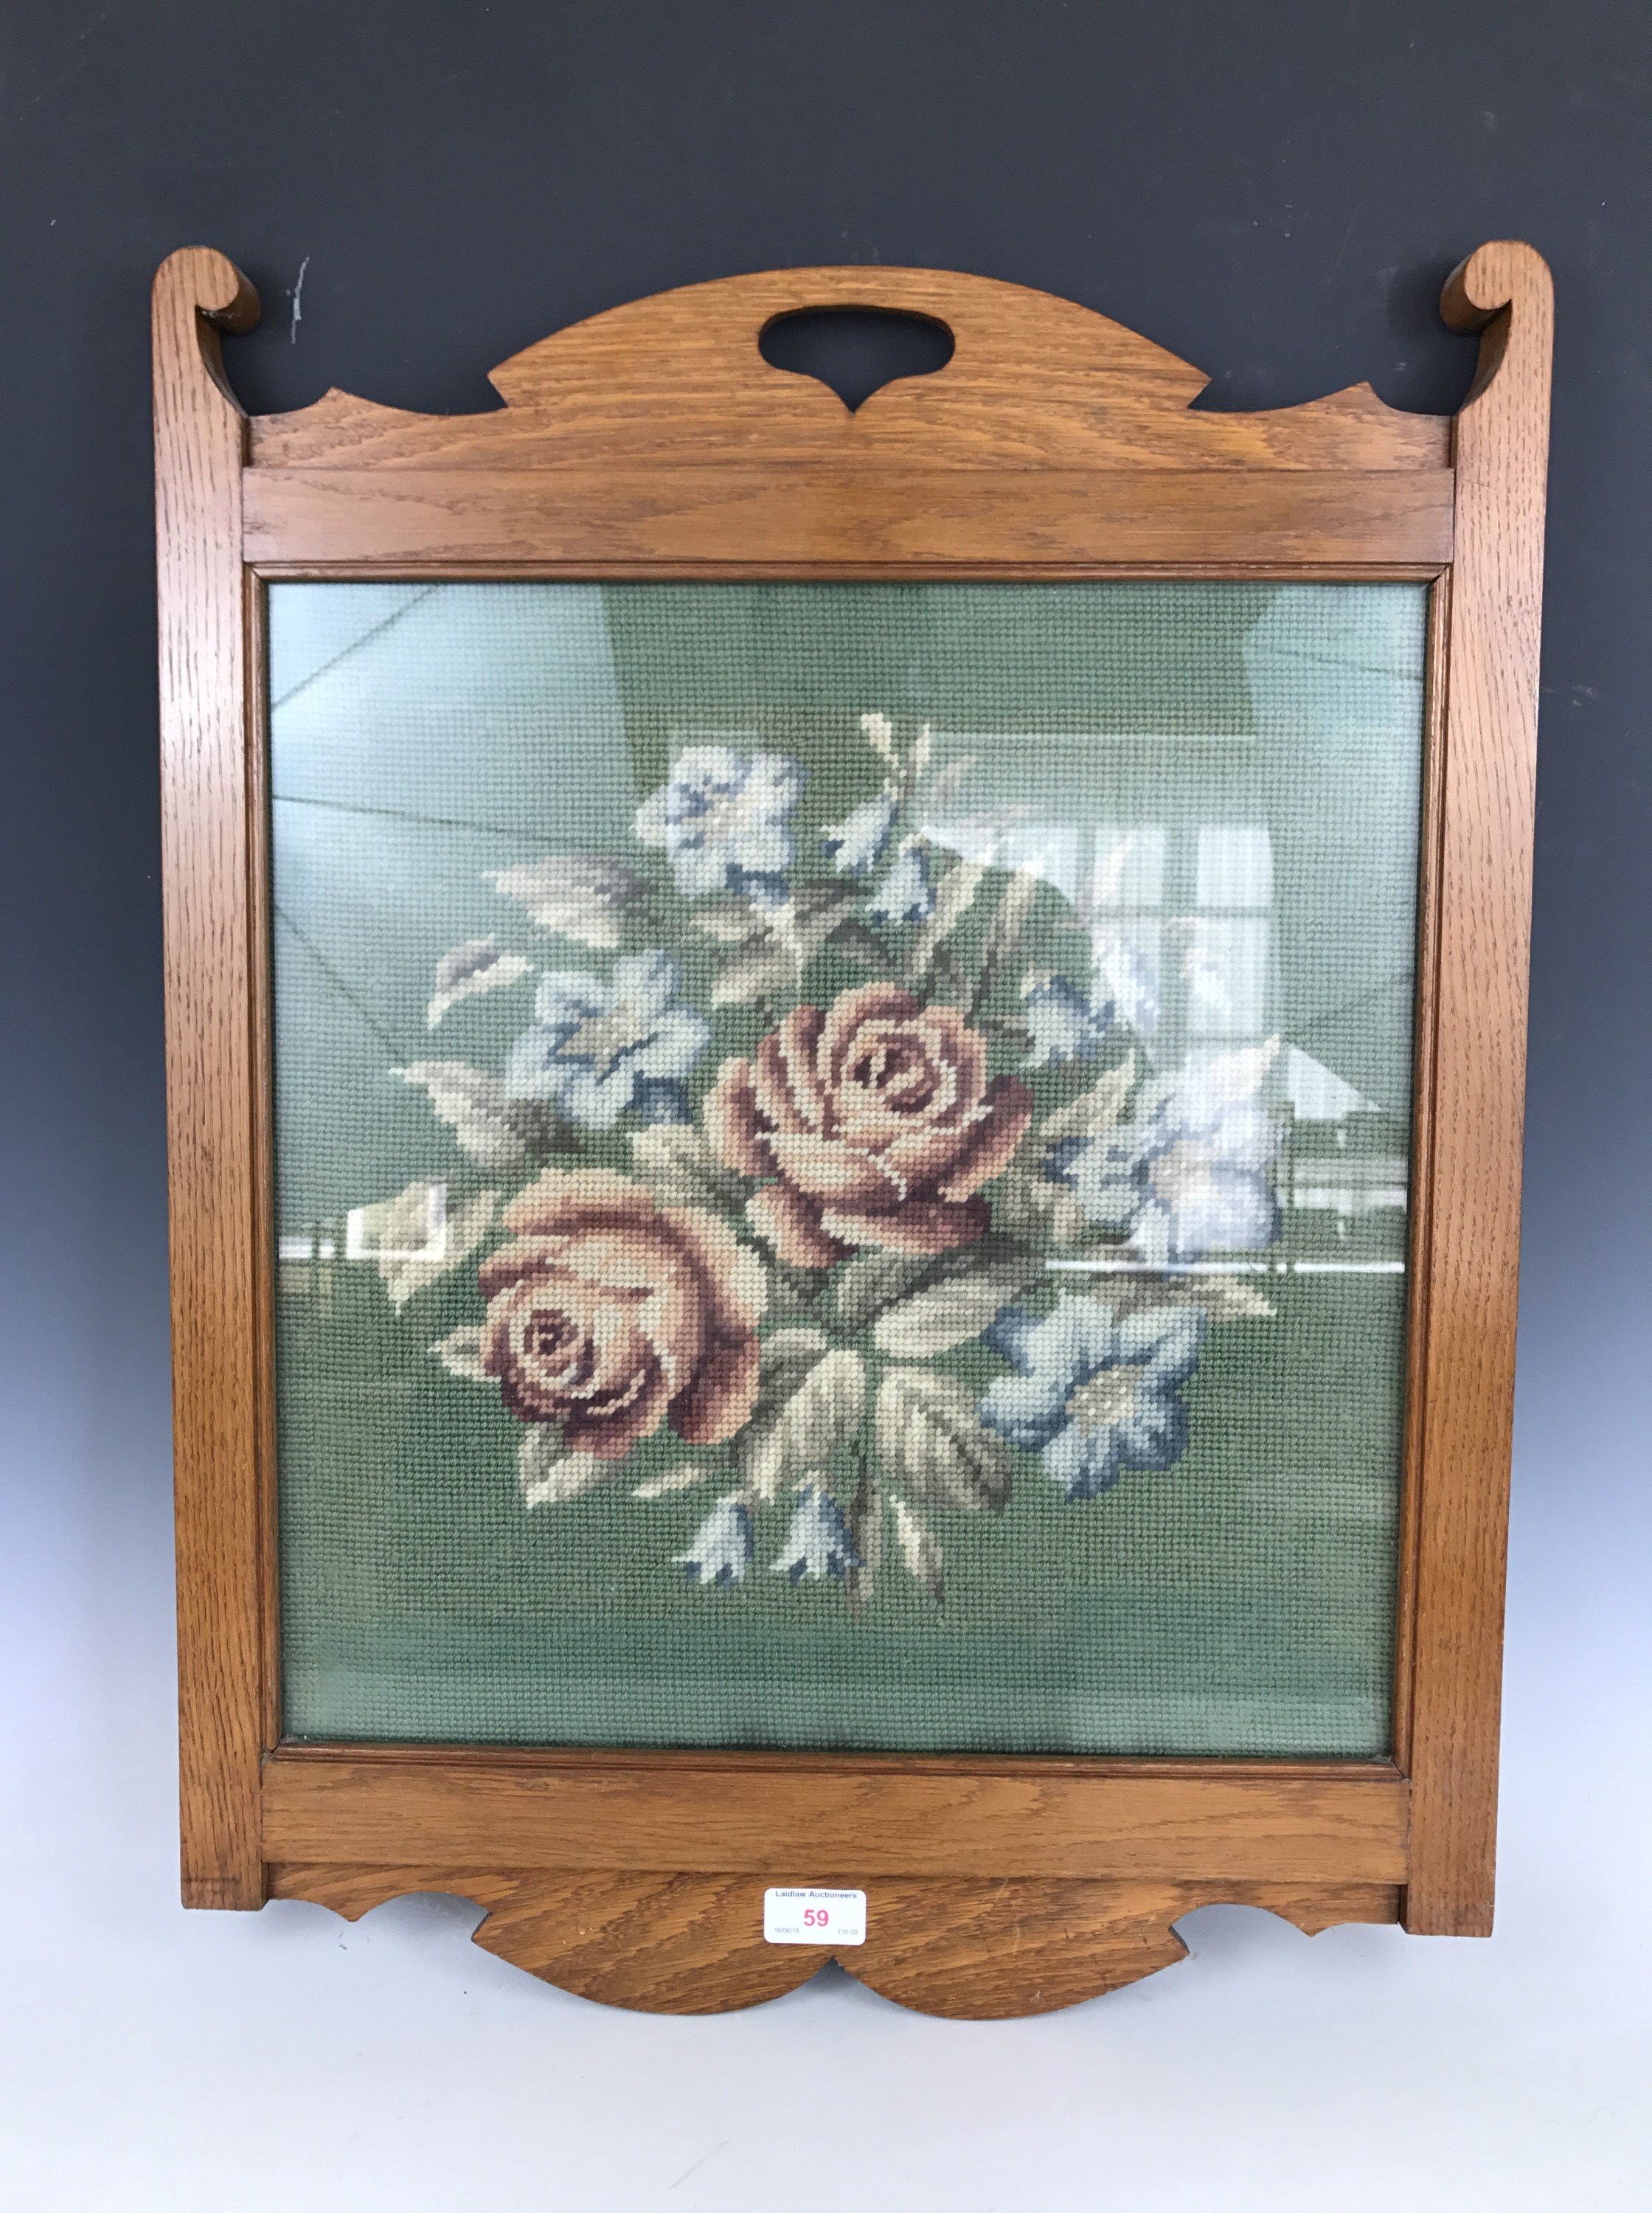 Lot 59 - An early 20th century oak framed woolwork in the arts-and-crafts style